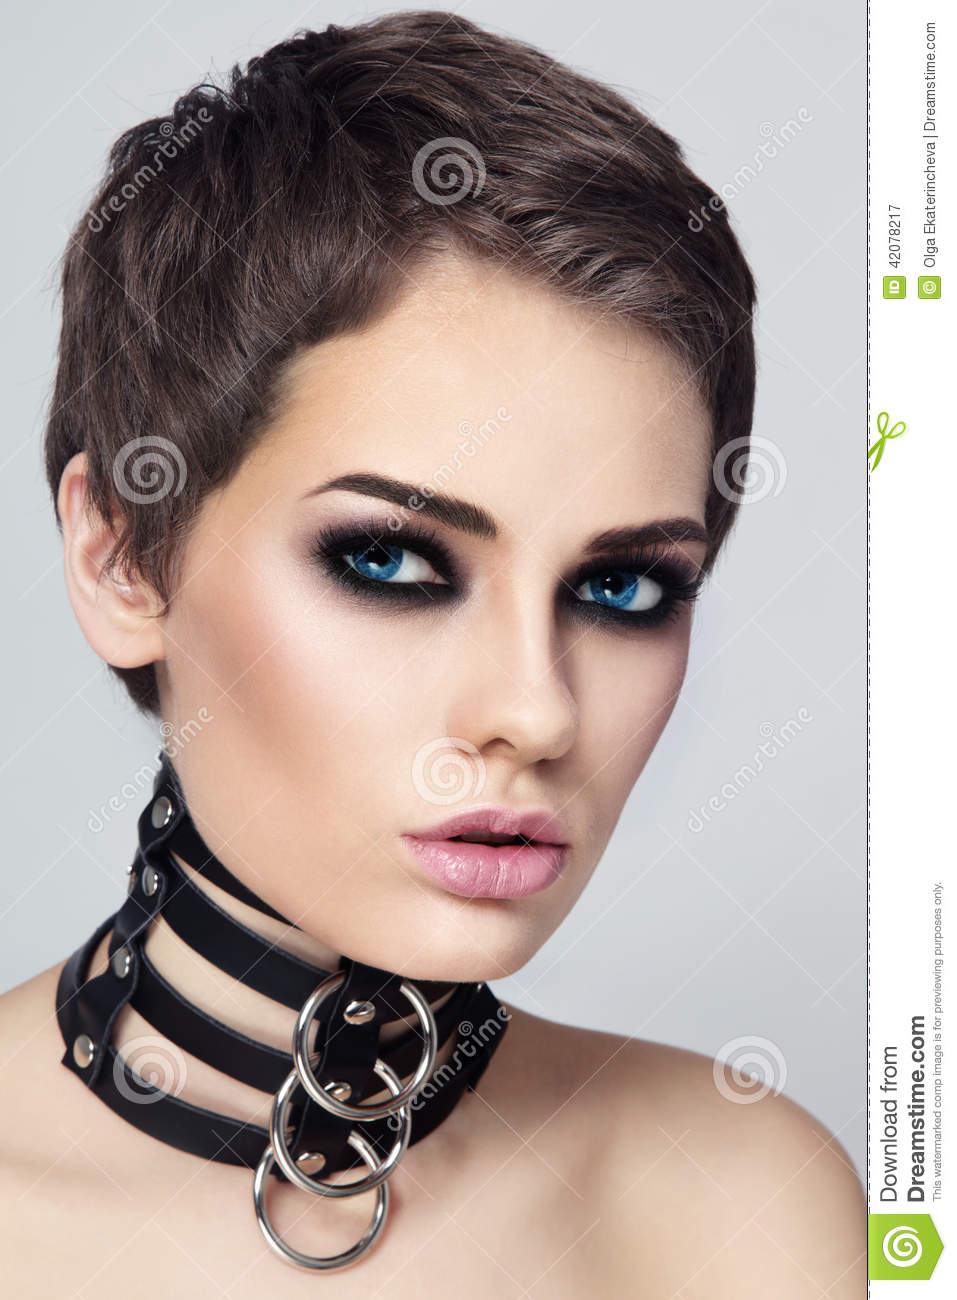 Woman In Leather Collar Stock Image Image Of Hairstyle